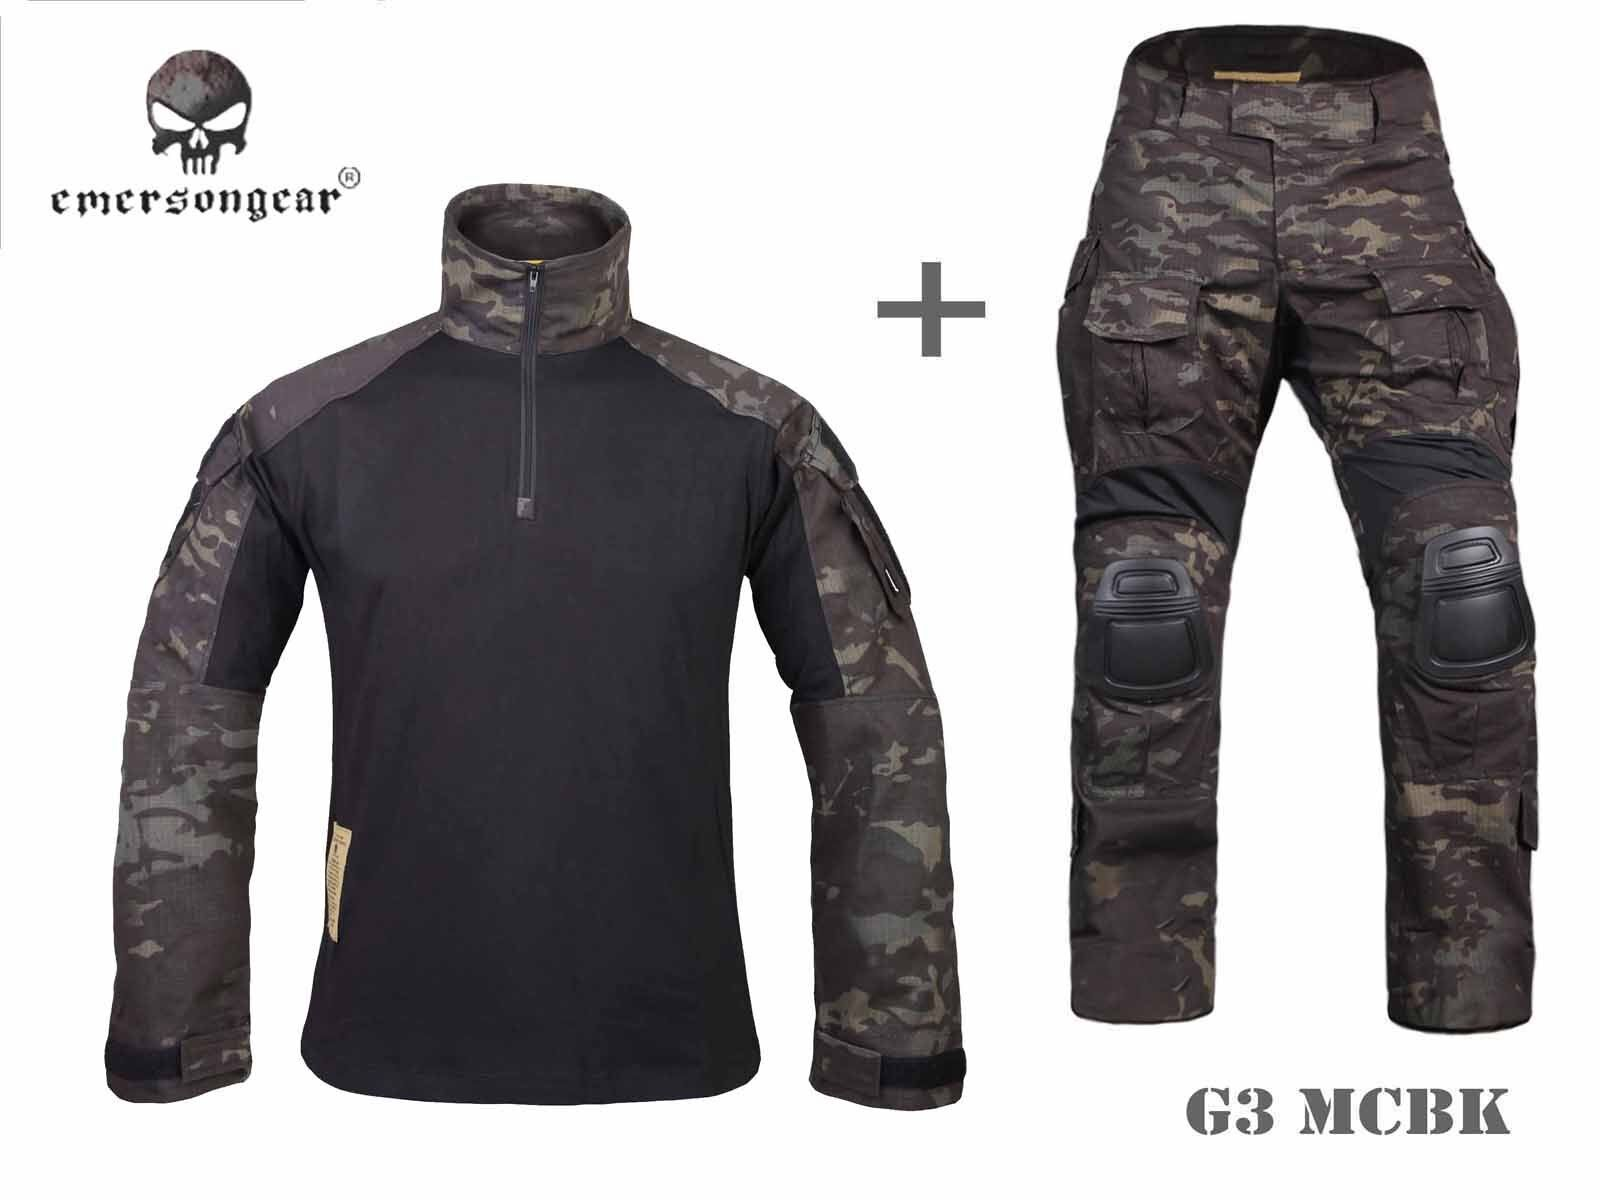 Emerson  Airsoft Hunting bdu Uniform Combat Tactical G3 Uniform and Knee Pad MCBK  best quality best price